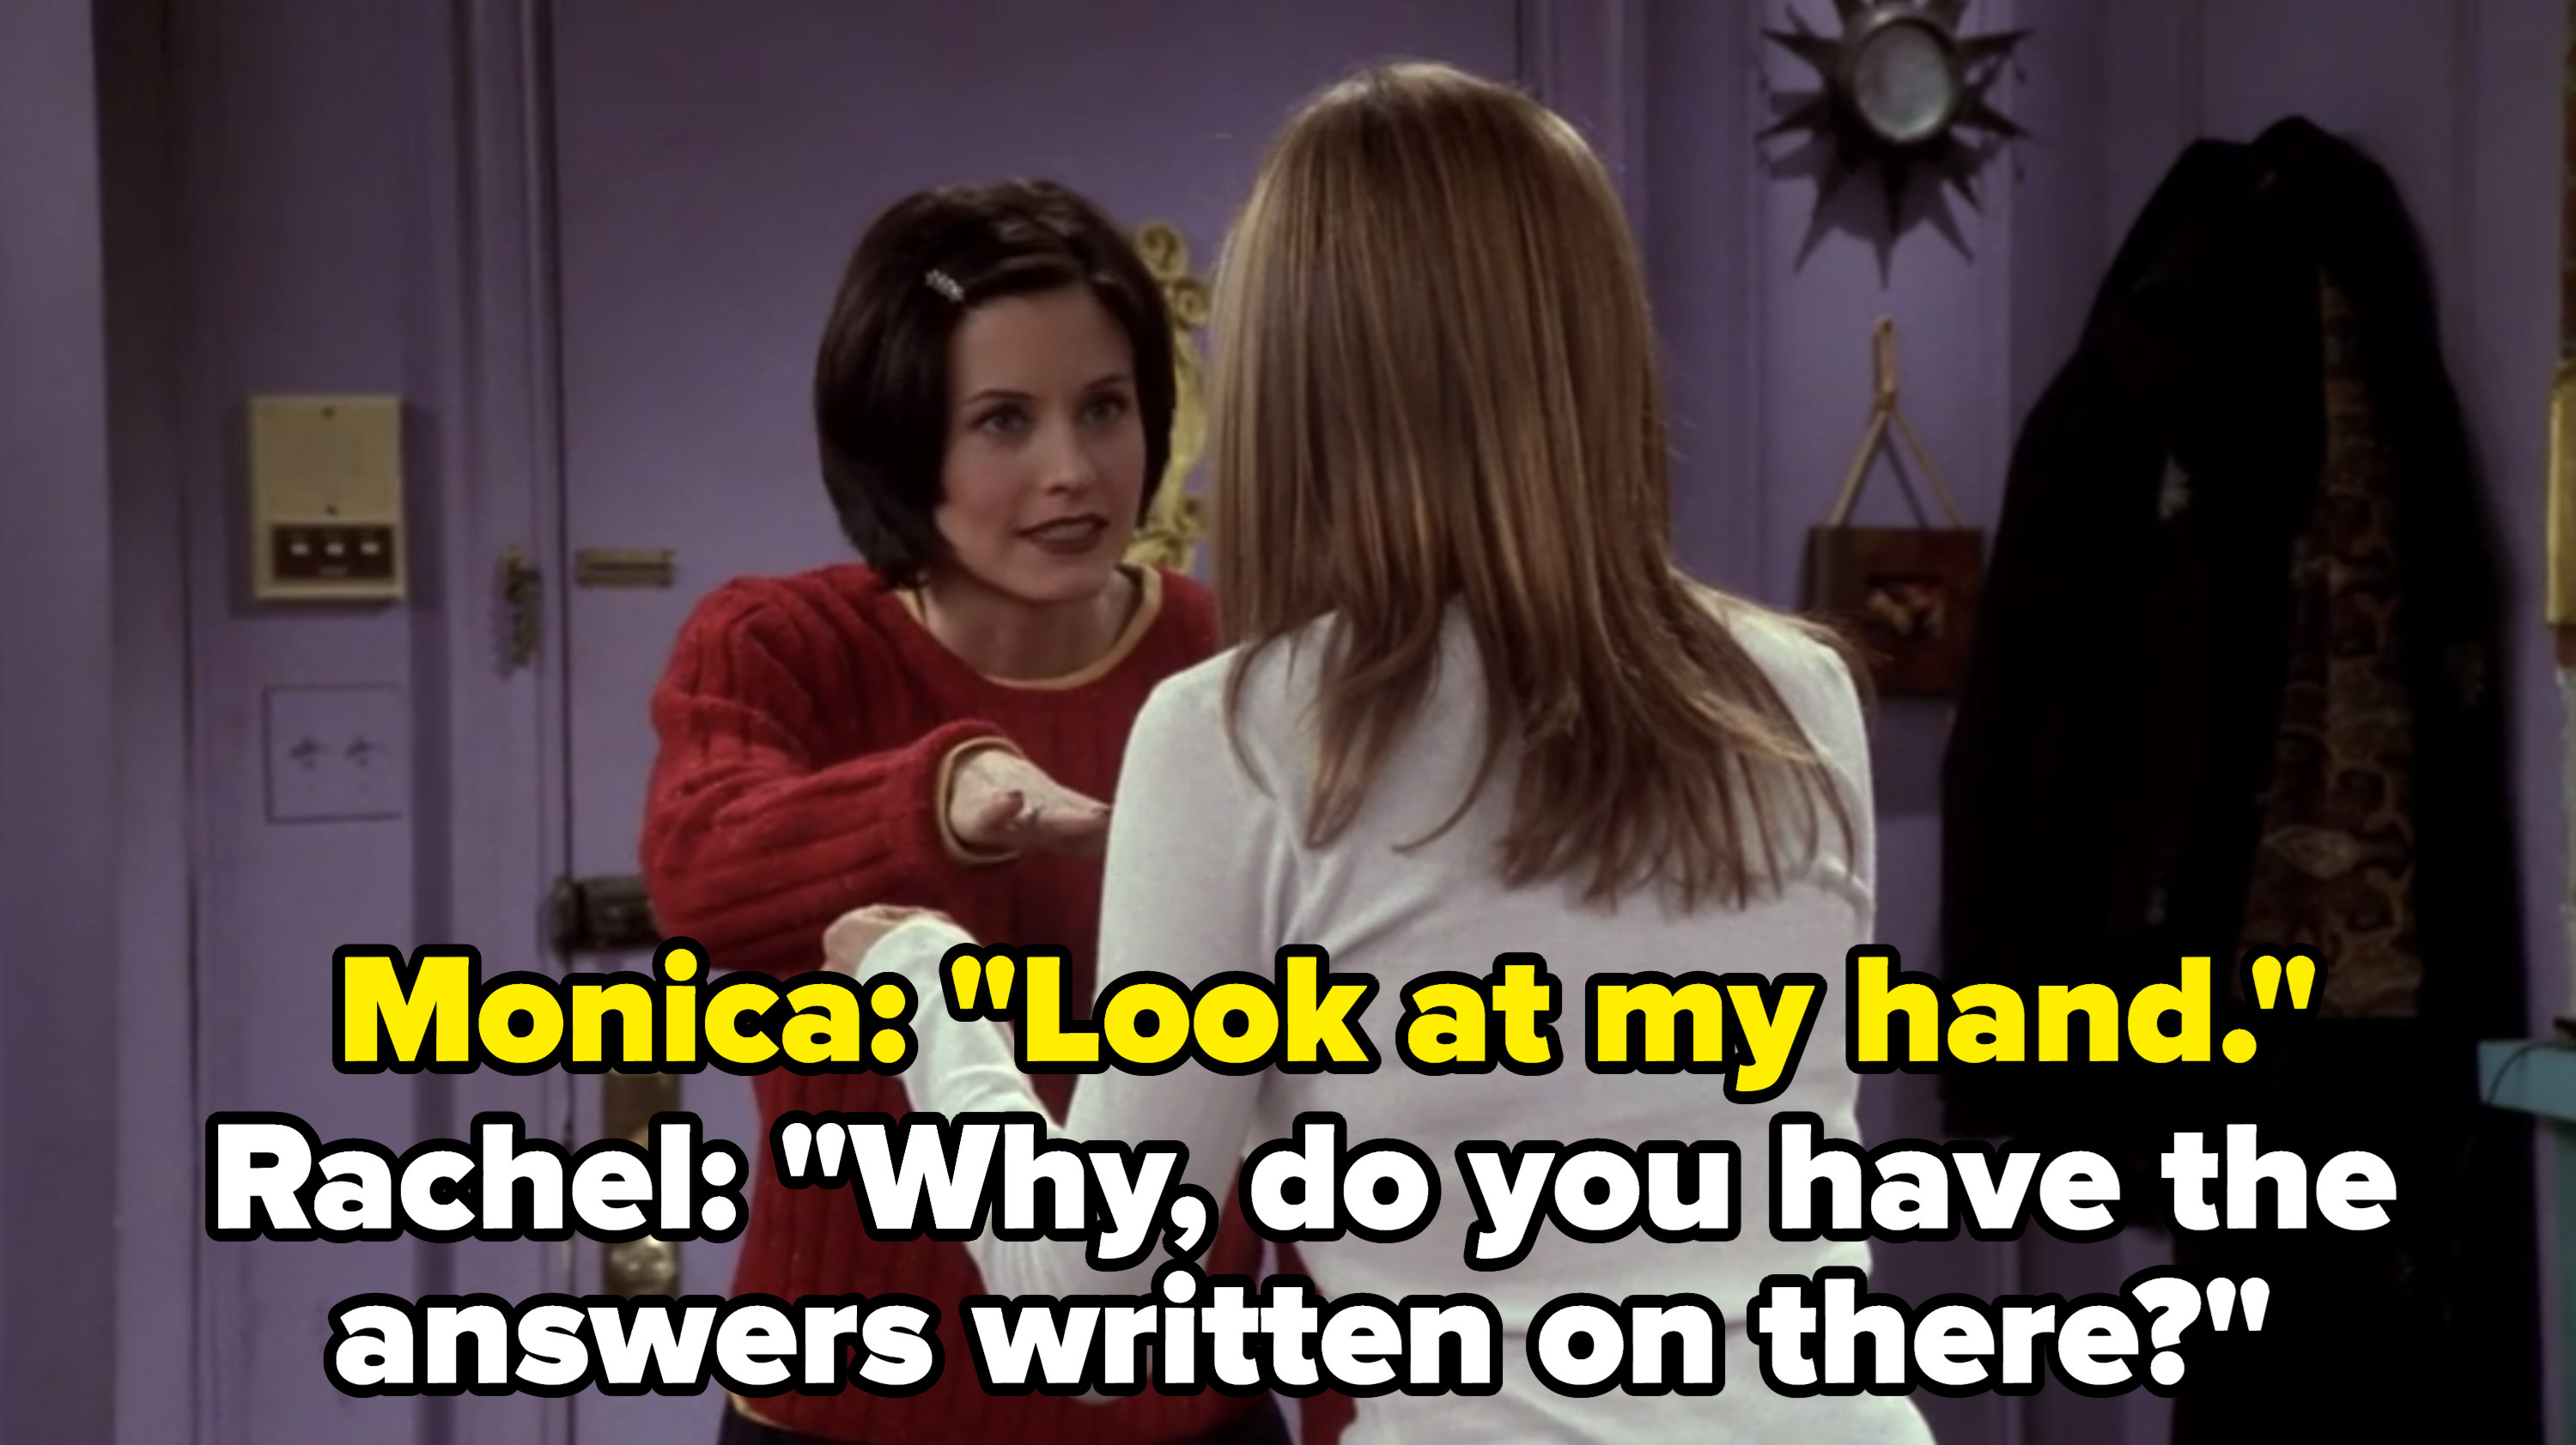 Monica shows her steady hand to Rachel, and Rachel asks if the answers are written on it.